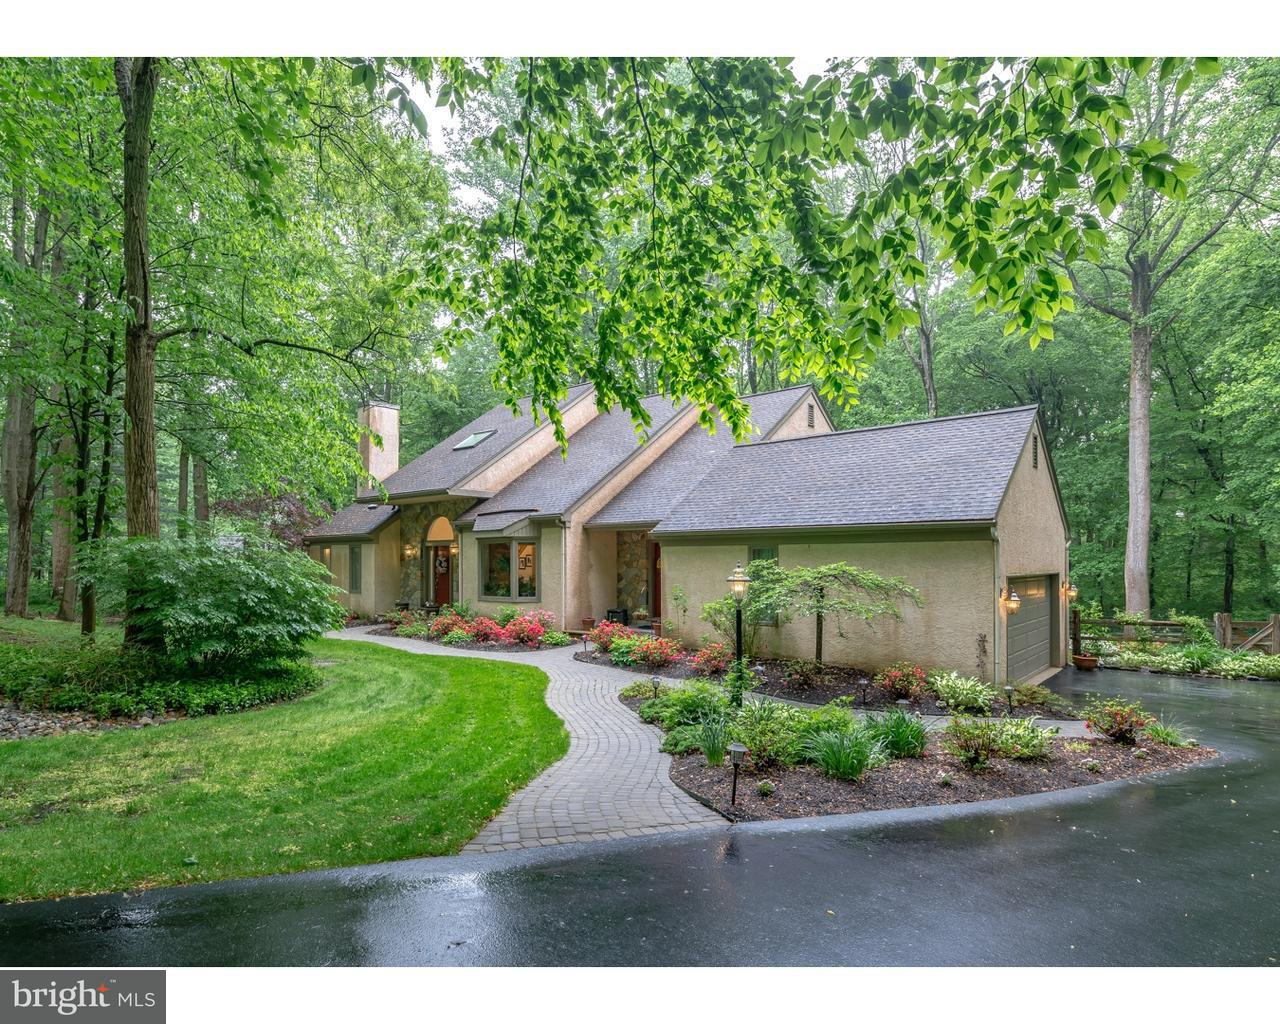 8 BEECHWOOD CIRCLE, Chadds Ford, PA, 19317, MLS # 1001511260 | RE ...